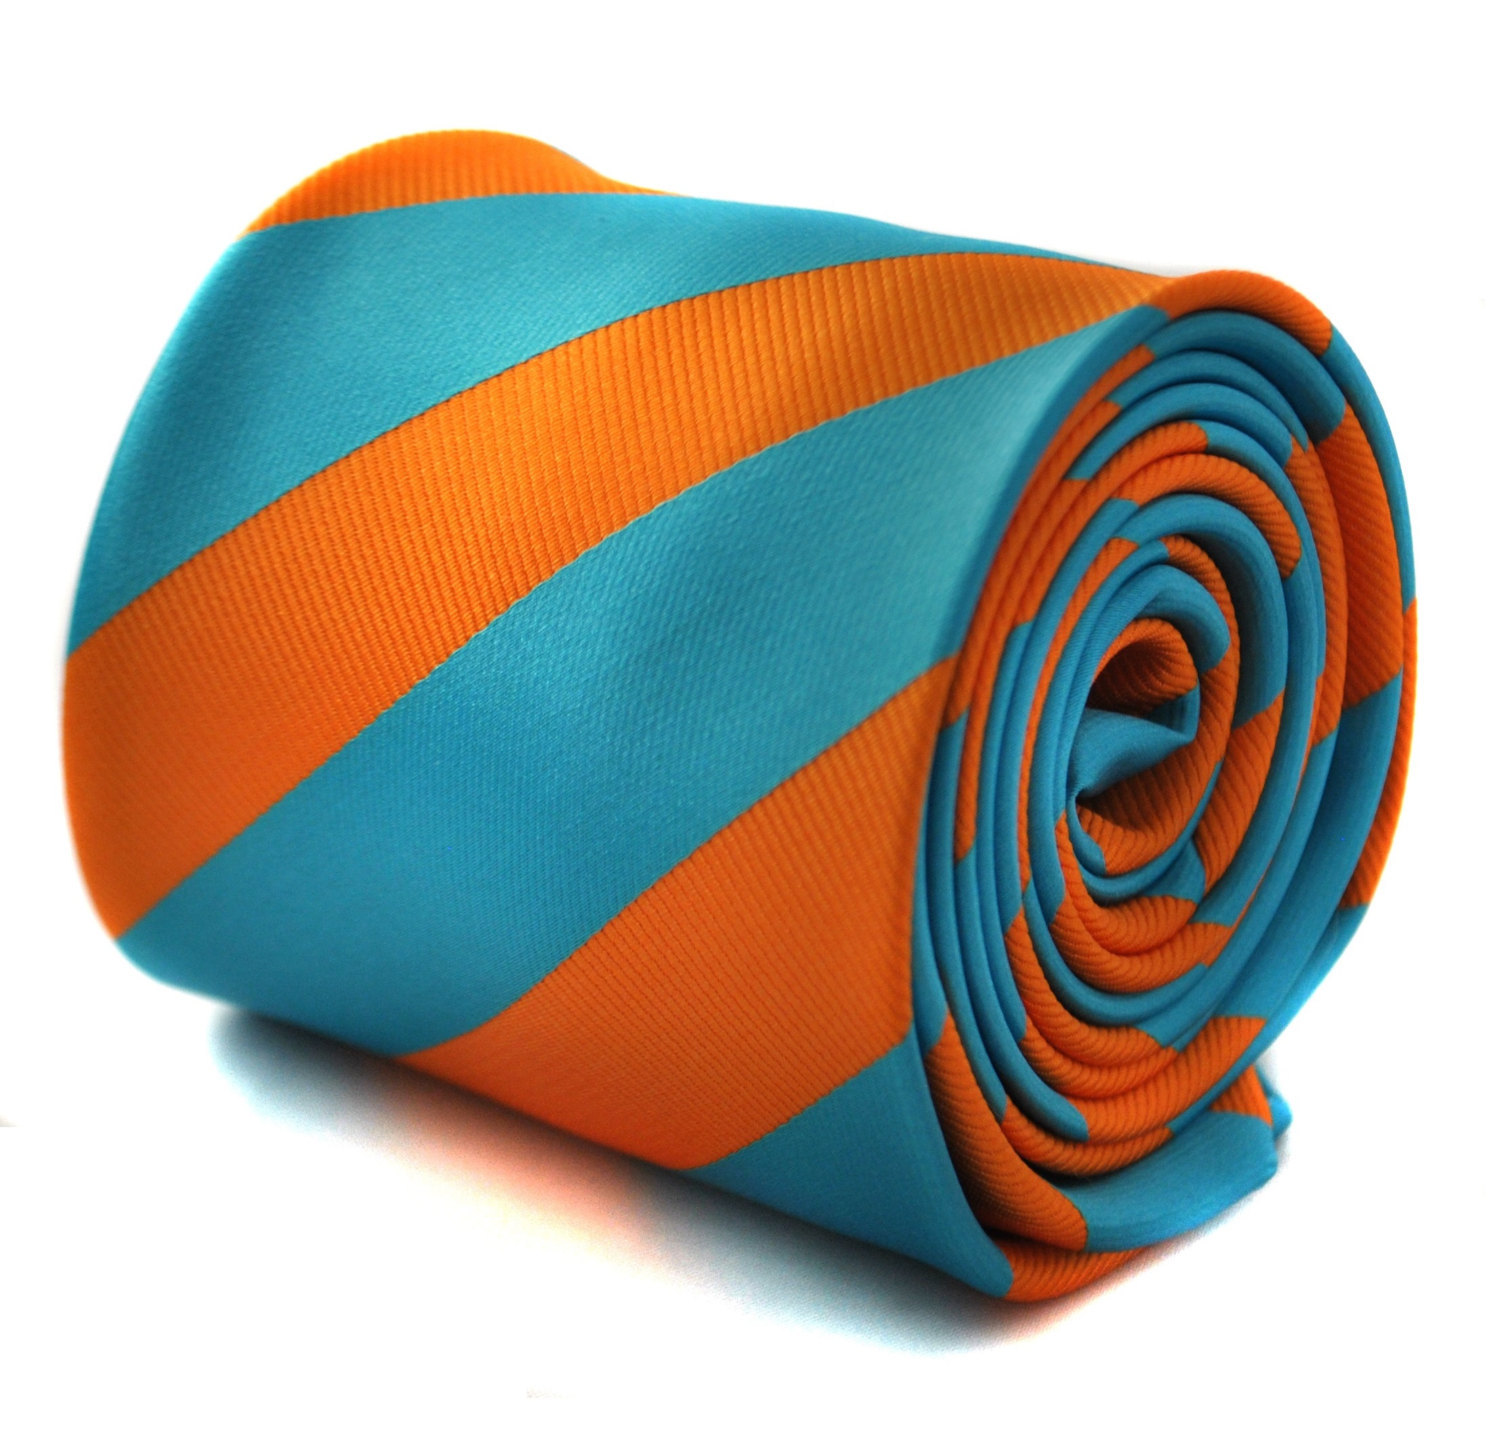 Turquoise and orange barber striped tie with signature floral design to the rear